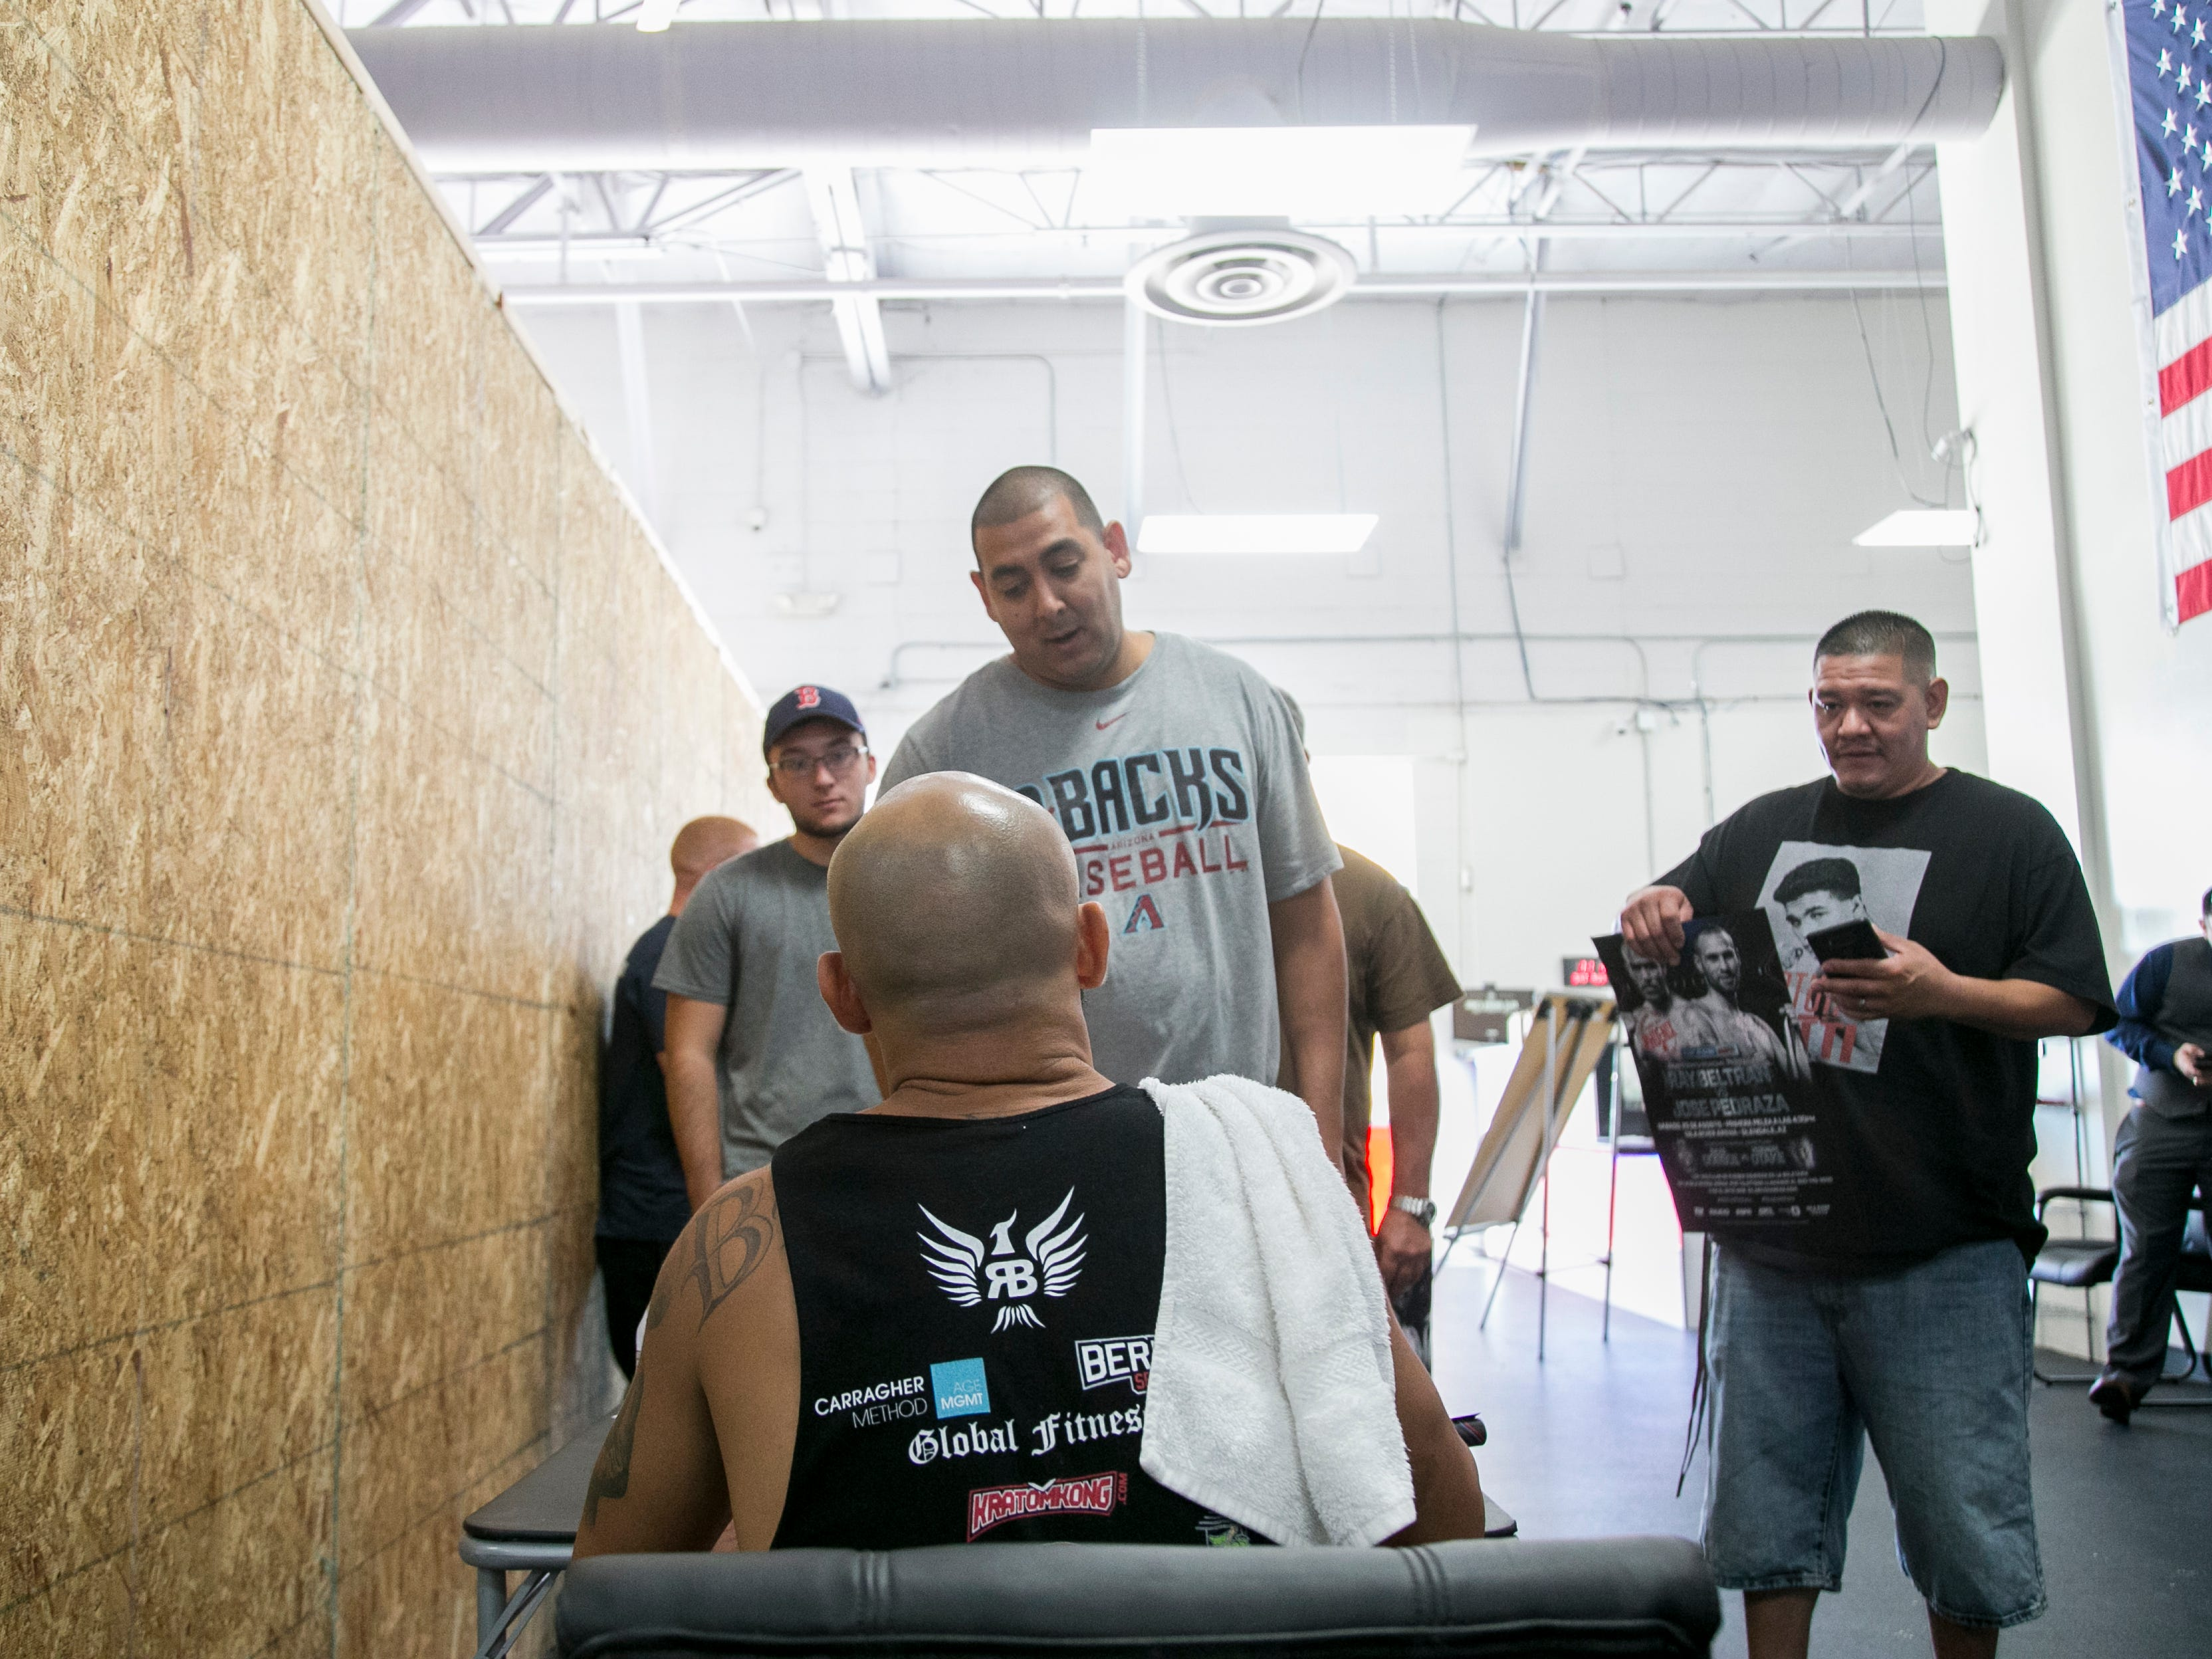 Ray Beltran, the World Boxing Organization World Lightweight champion, signs autographs at a media day event at Gent's Boxing Club in Glendale, Ariz. on Sat. Aug 4, 2018.